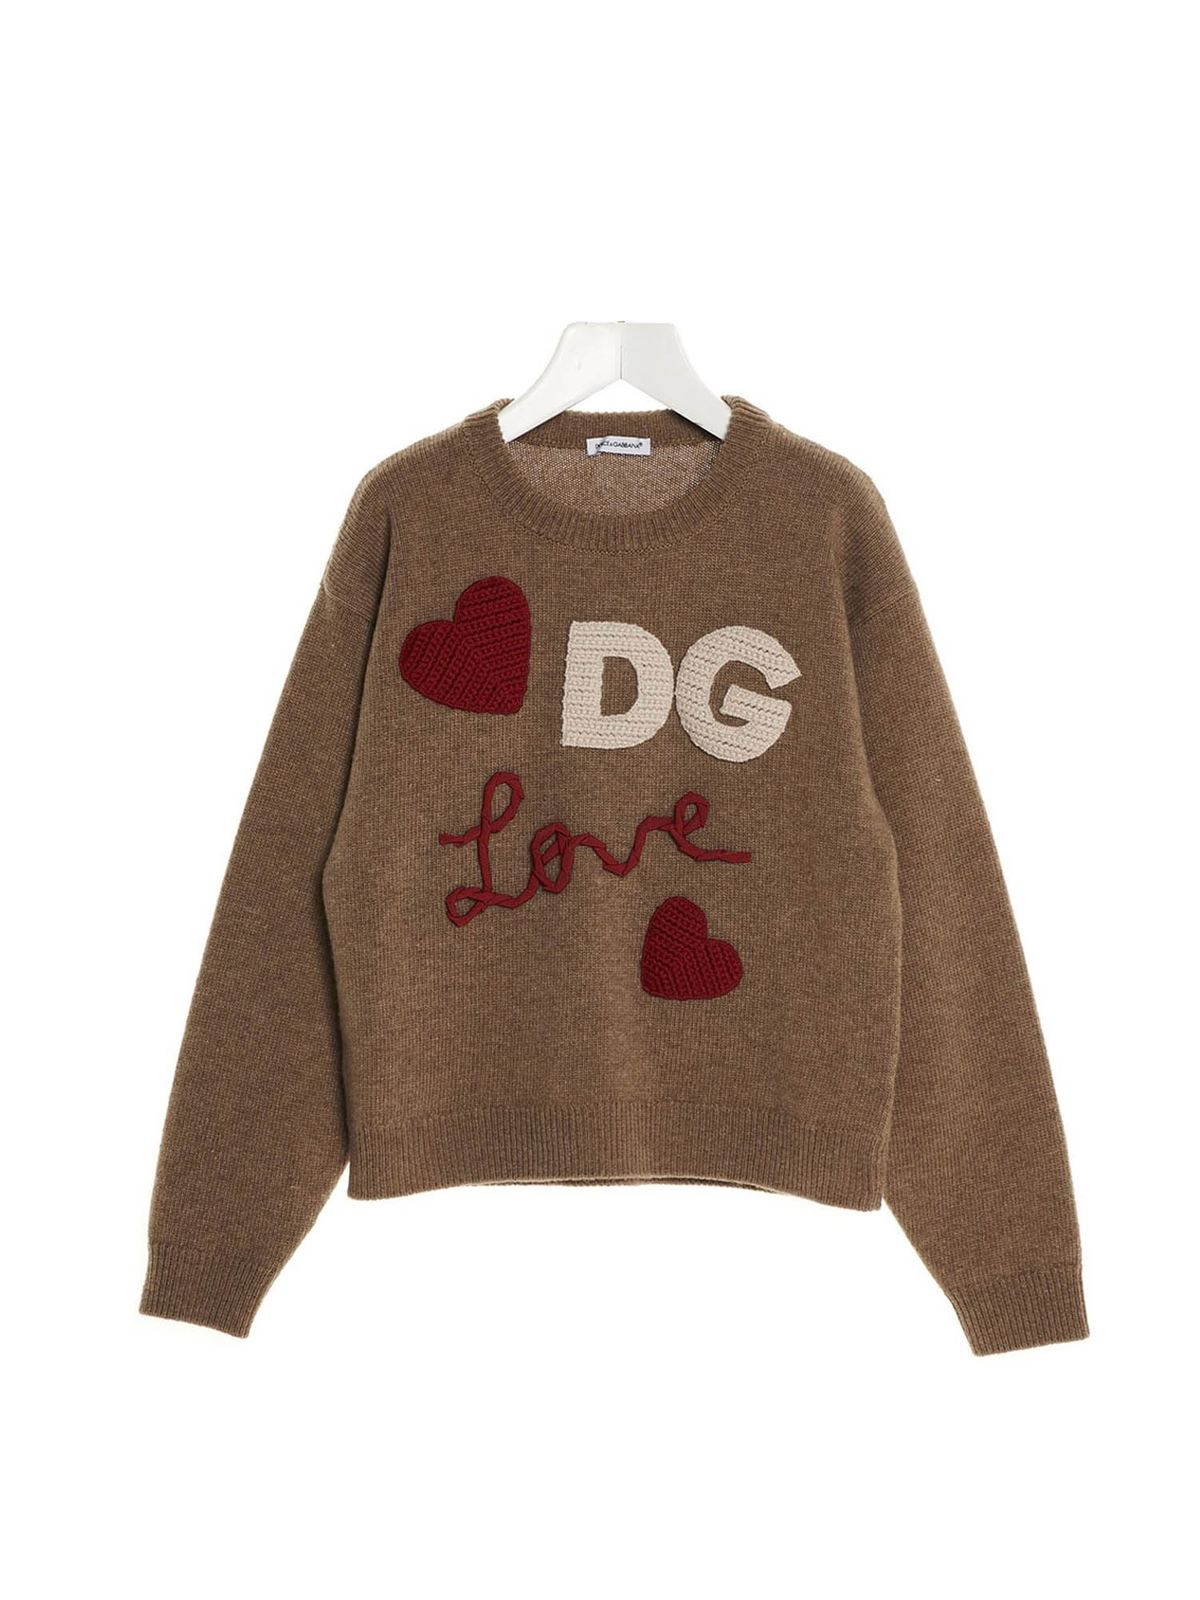 Dolce & Gabbana Jr Clothing DG LOVE PATCH PULLOVER IN BROWN